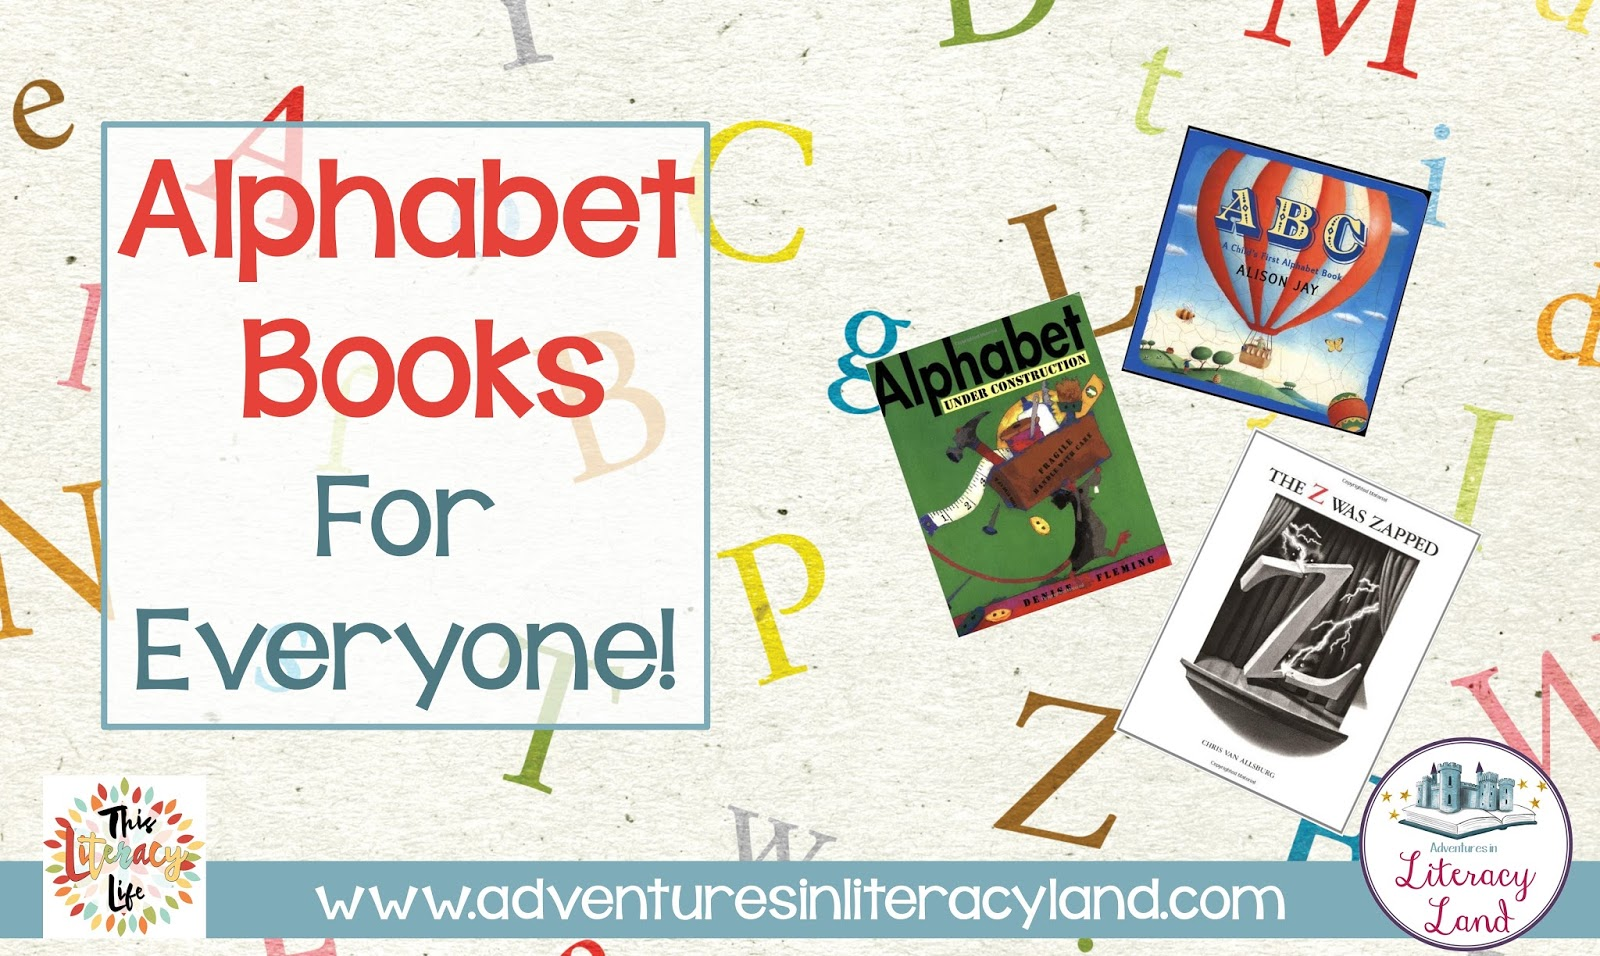 Alphabet books aren't just for the youngest readers. With so many choices, everyone can find one (or more) to enjoy!